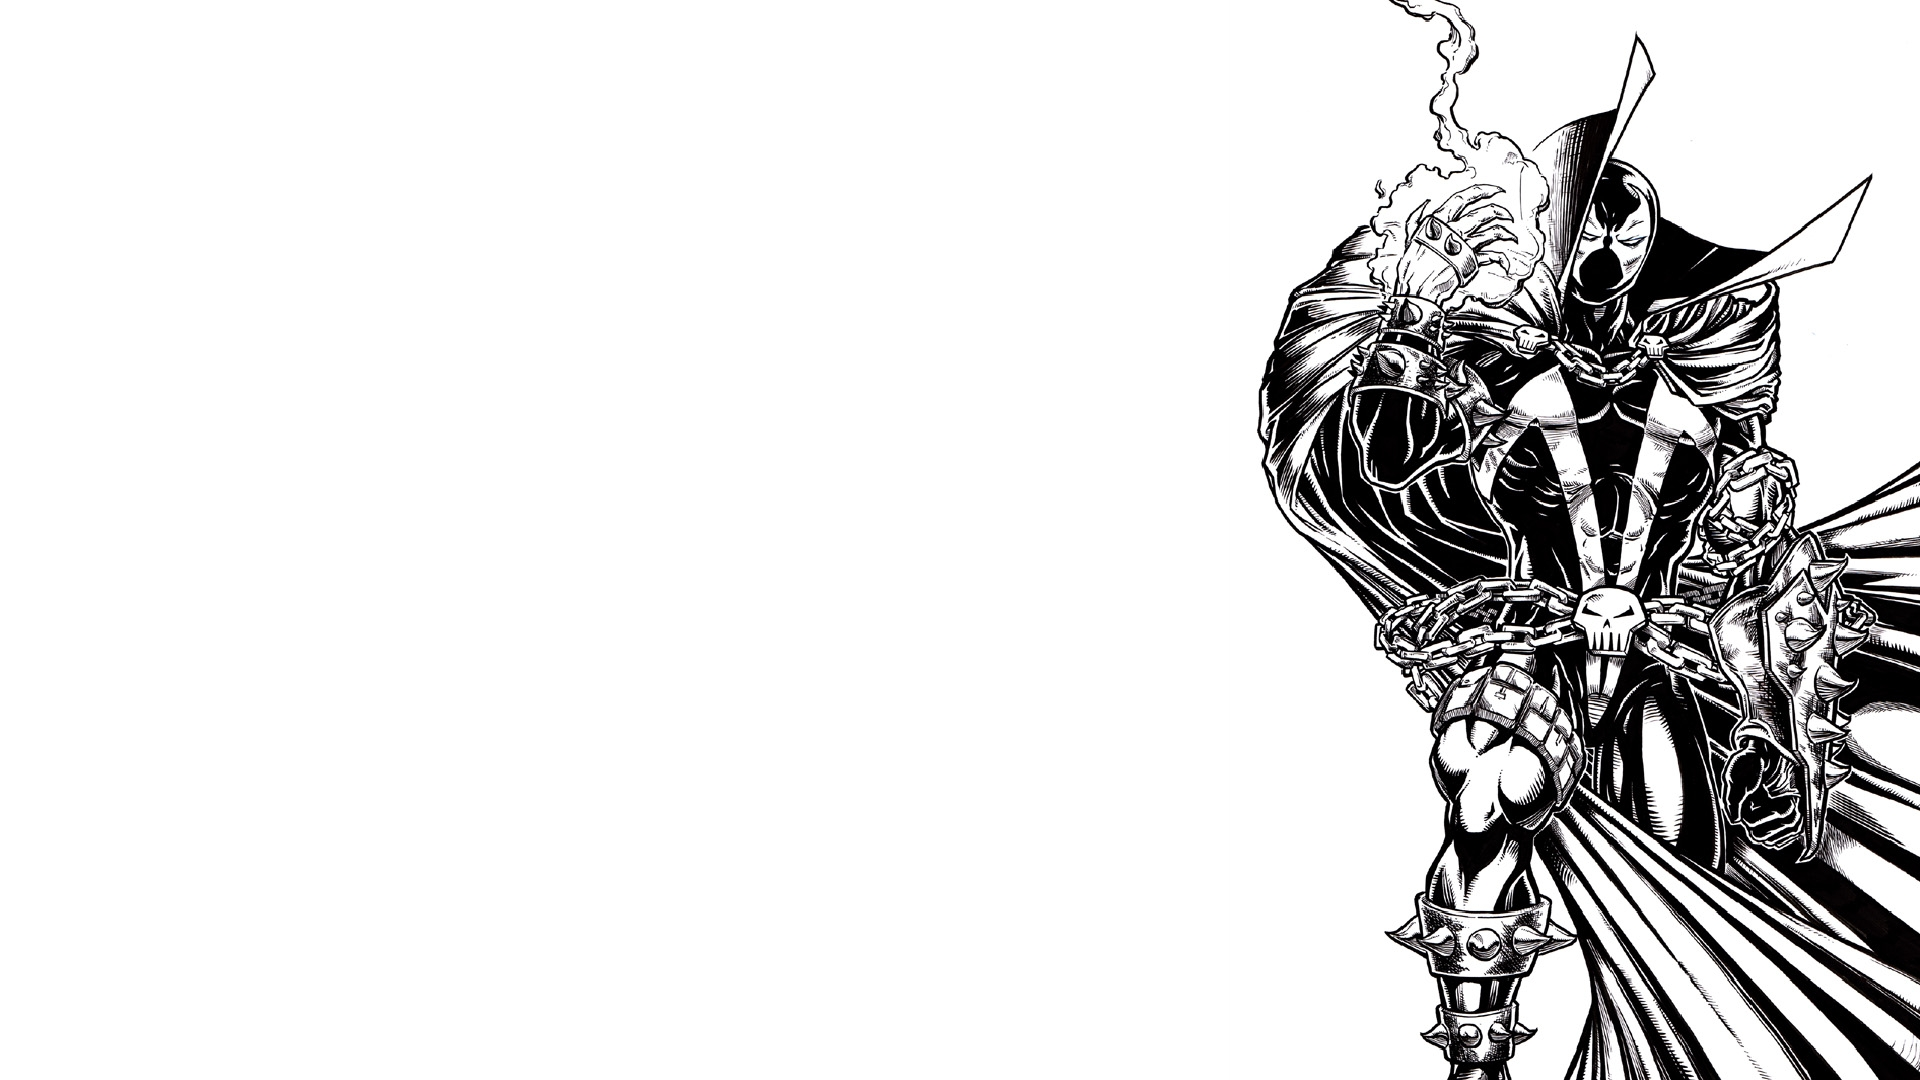 spawn wallpapers 1920x1080 - photo #27